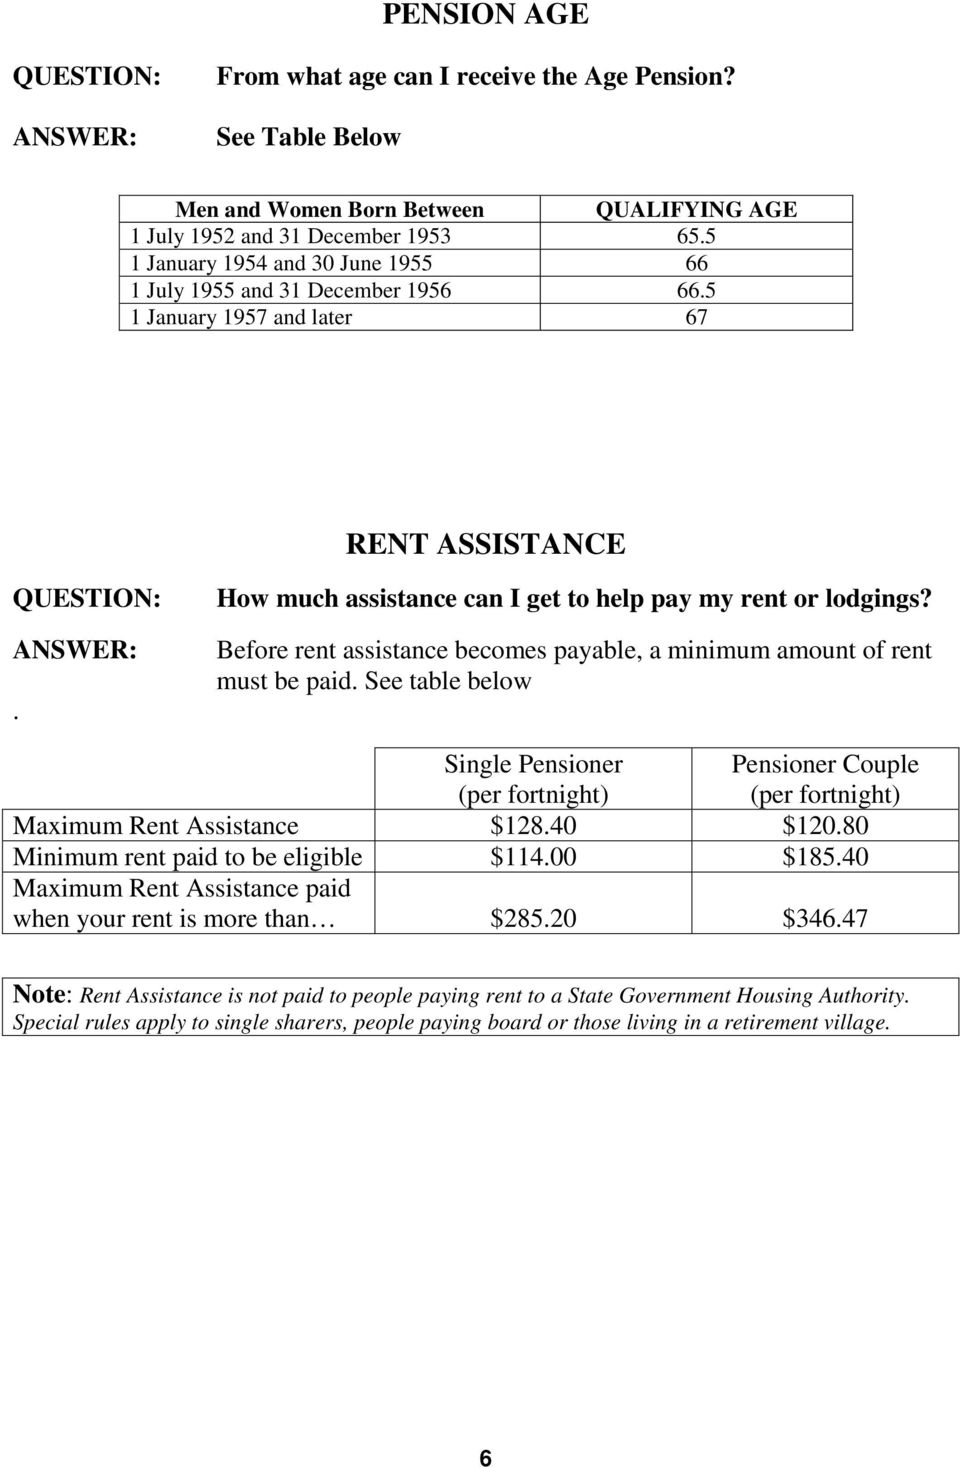 Before rent assistance becomes payable, a minimum amount of rent must be paid. See table below Single Pensioner (per fortnight) Pensioner Couple (per fortnight) Maximum Rent Assistance $128.40 $120.